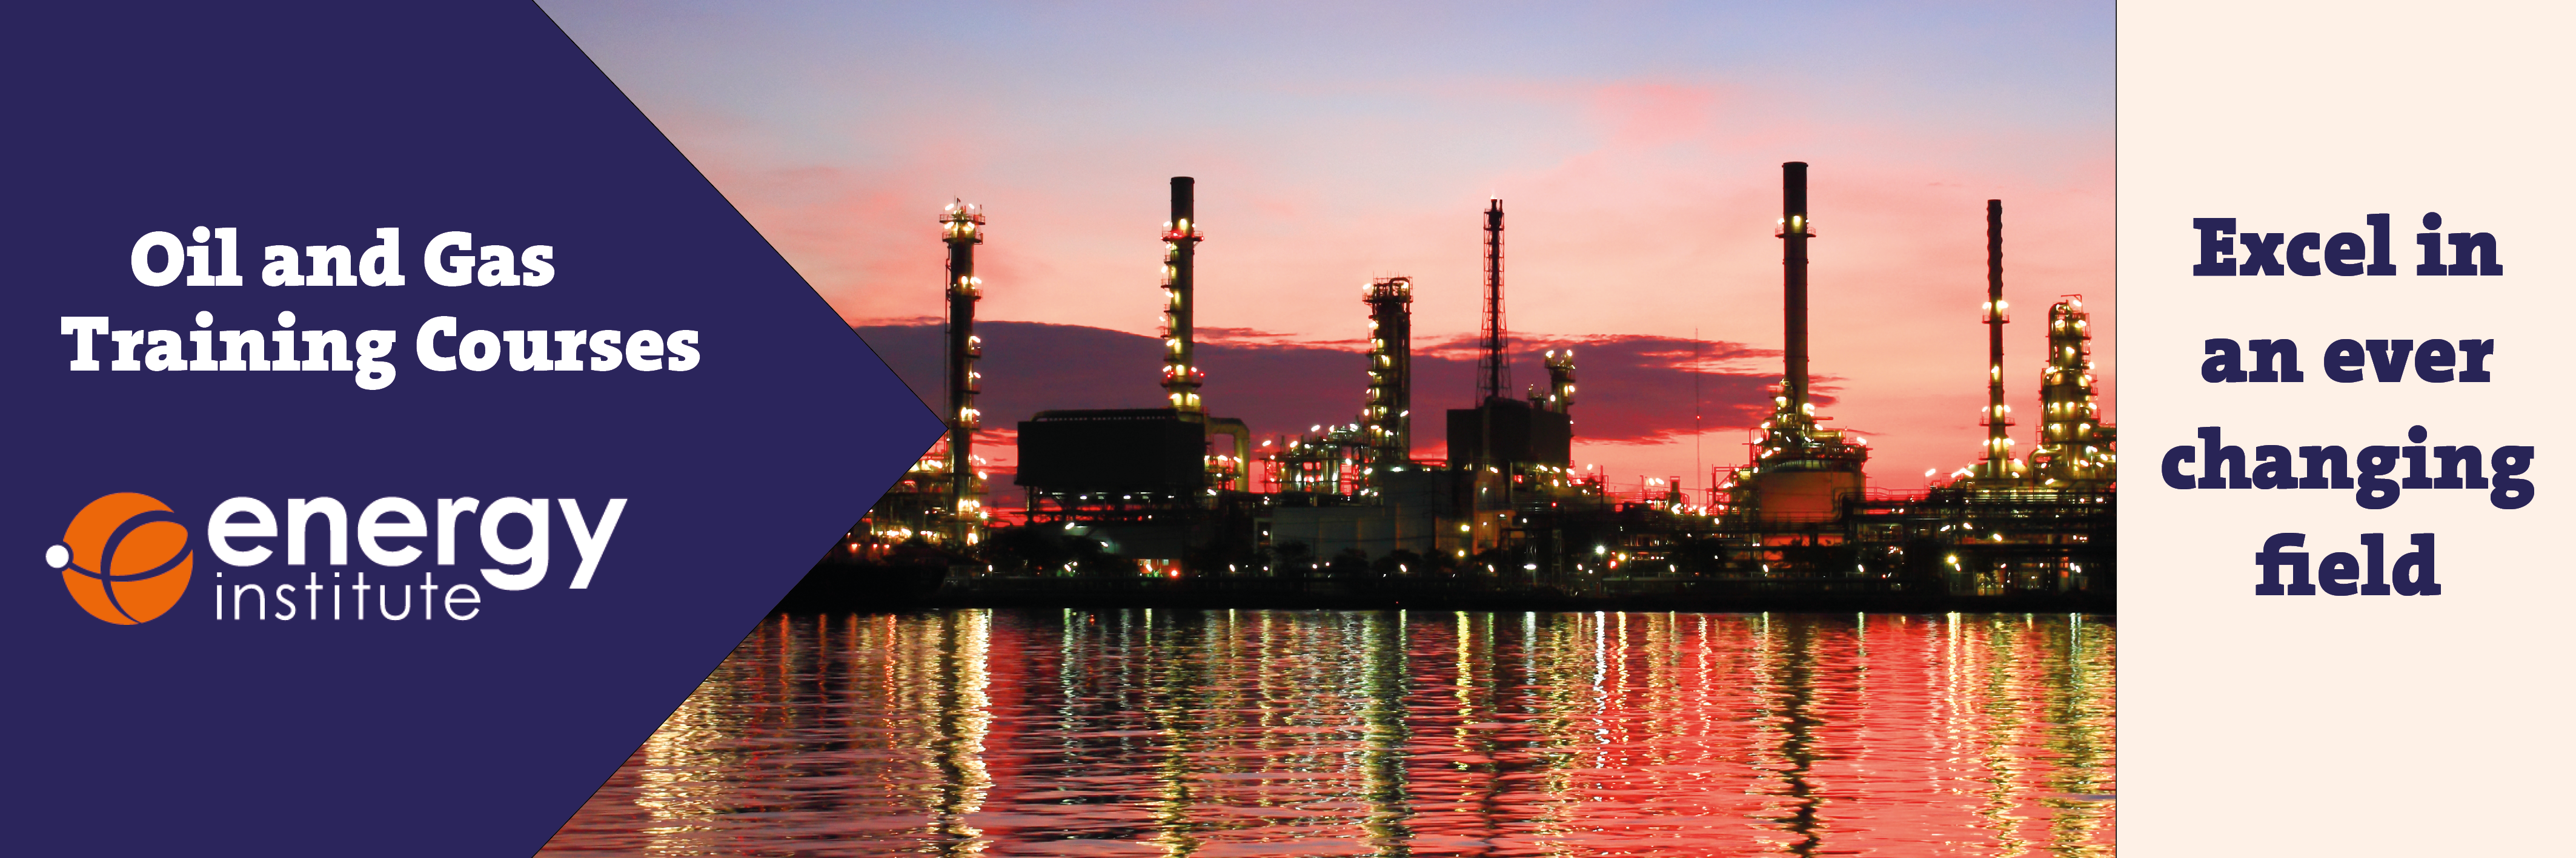 Oil-and-gas-banner-1500x500-Twitter-without-discount.png